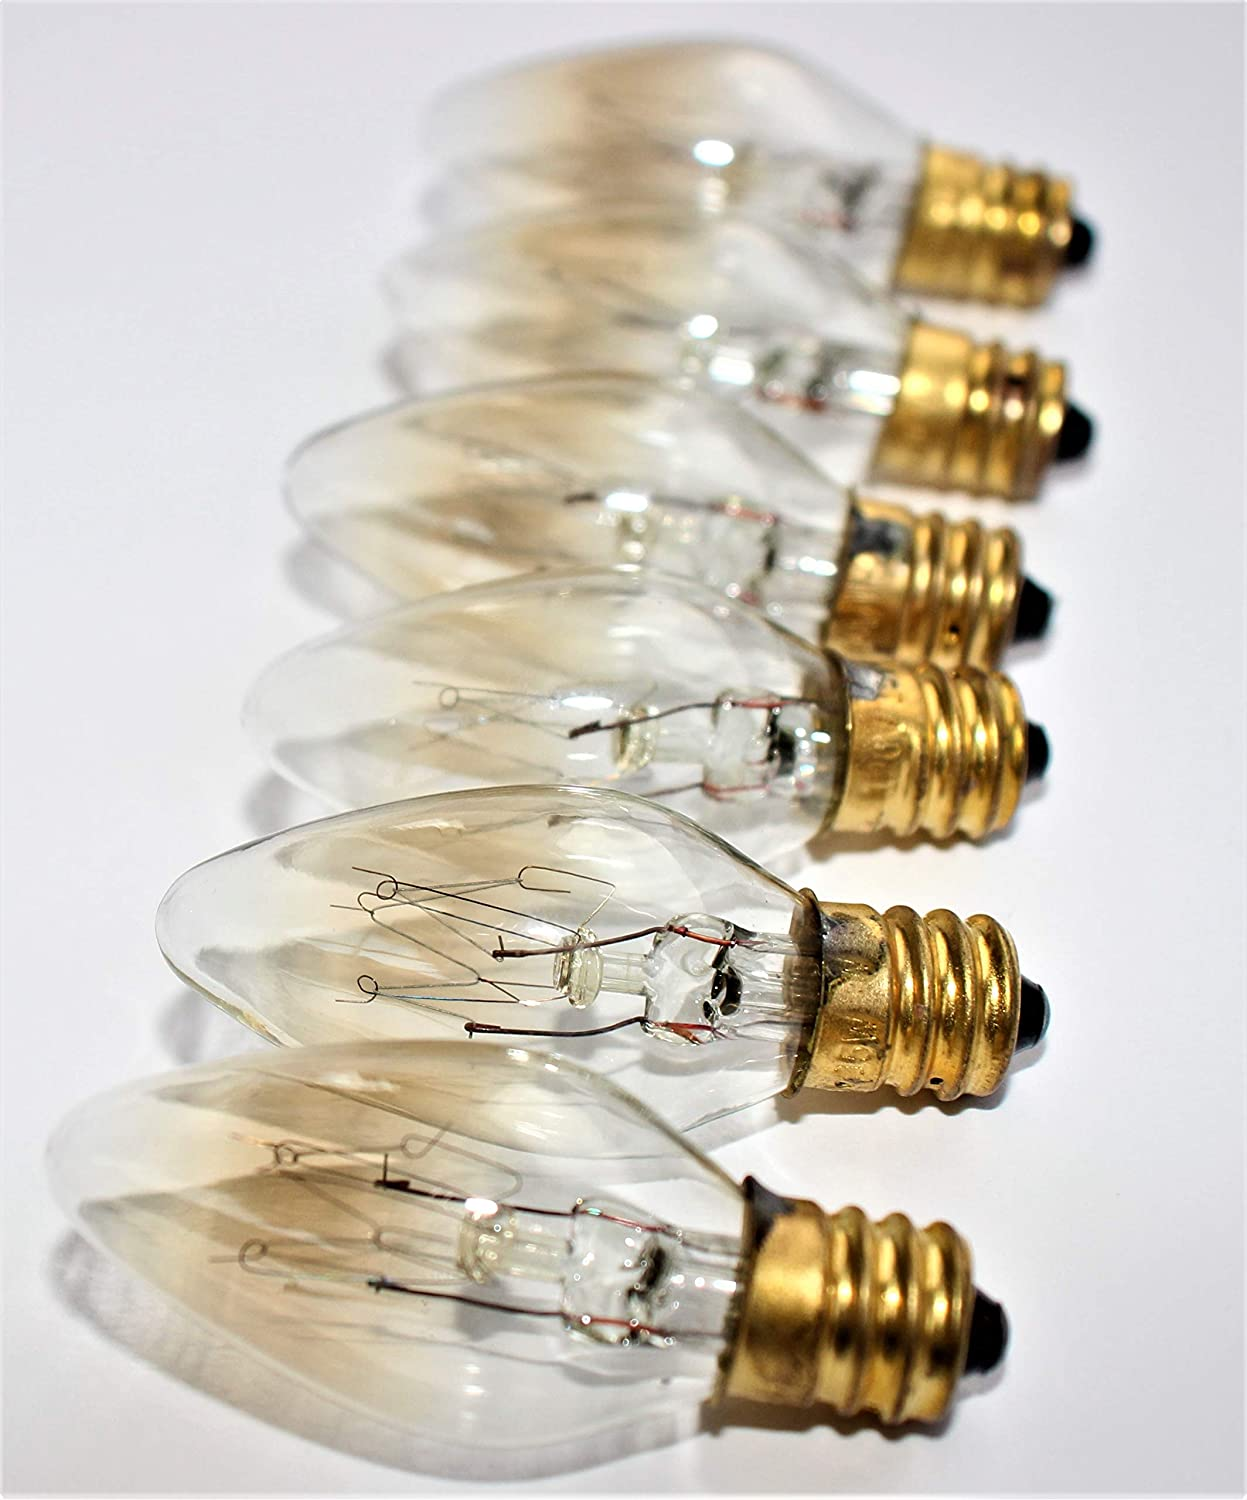 Mini 110v 15w Light Bulbs, Best Replacement for Himalayan Salt lamp, Lava lamp, Decorative lamp, Christmas Light. Incandescent, E12 Socket, Candle Shape, Clear Glass, Set of 6. for Your Home.